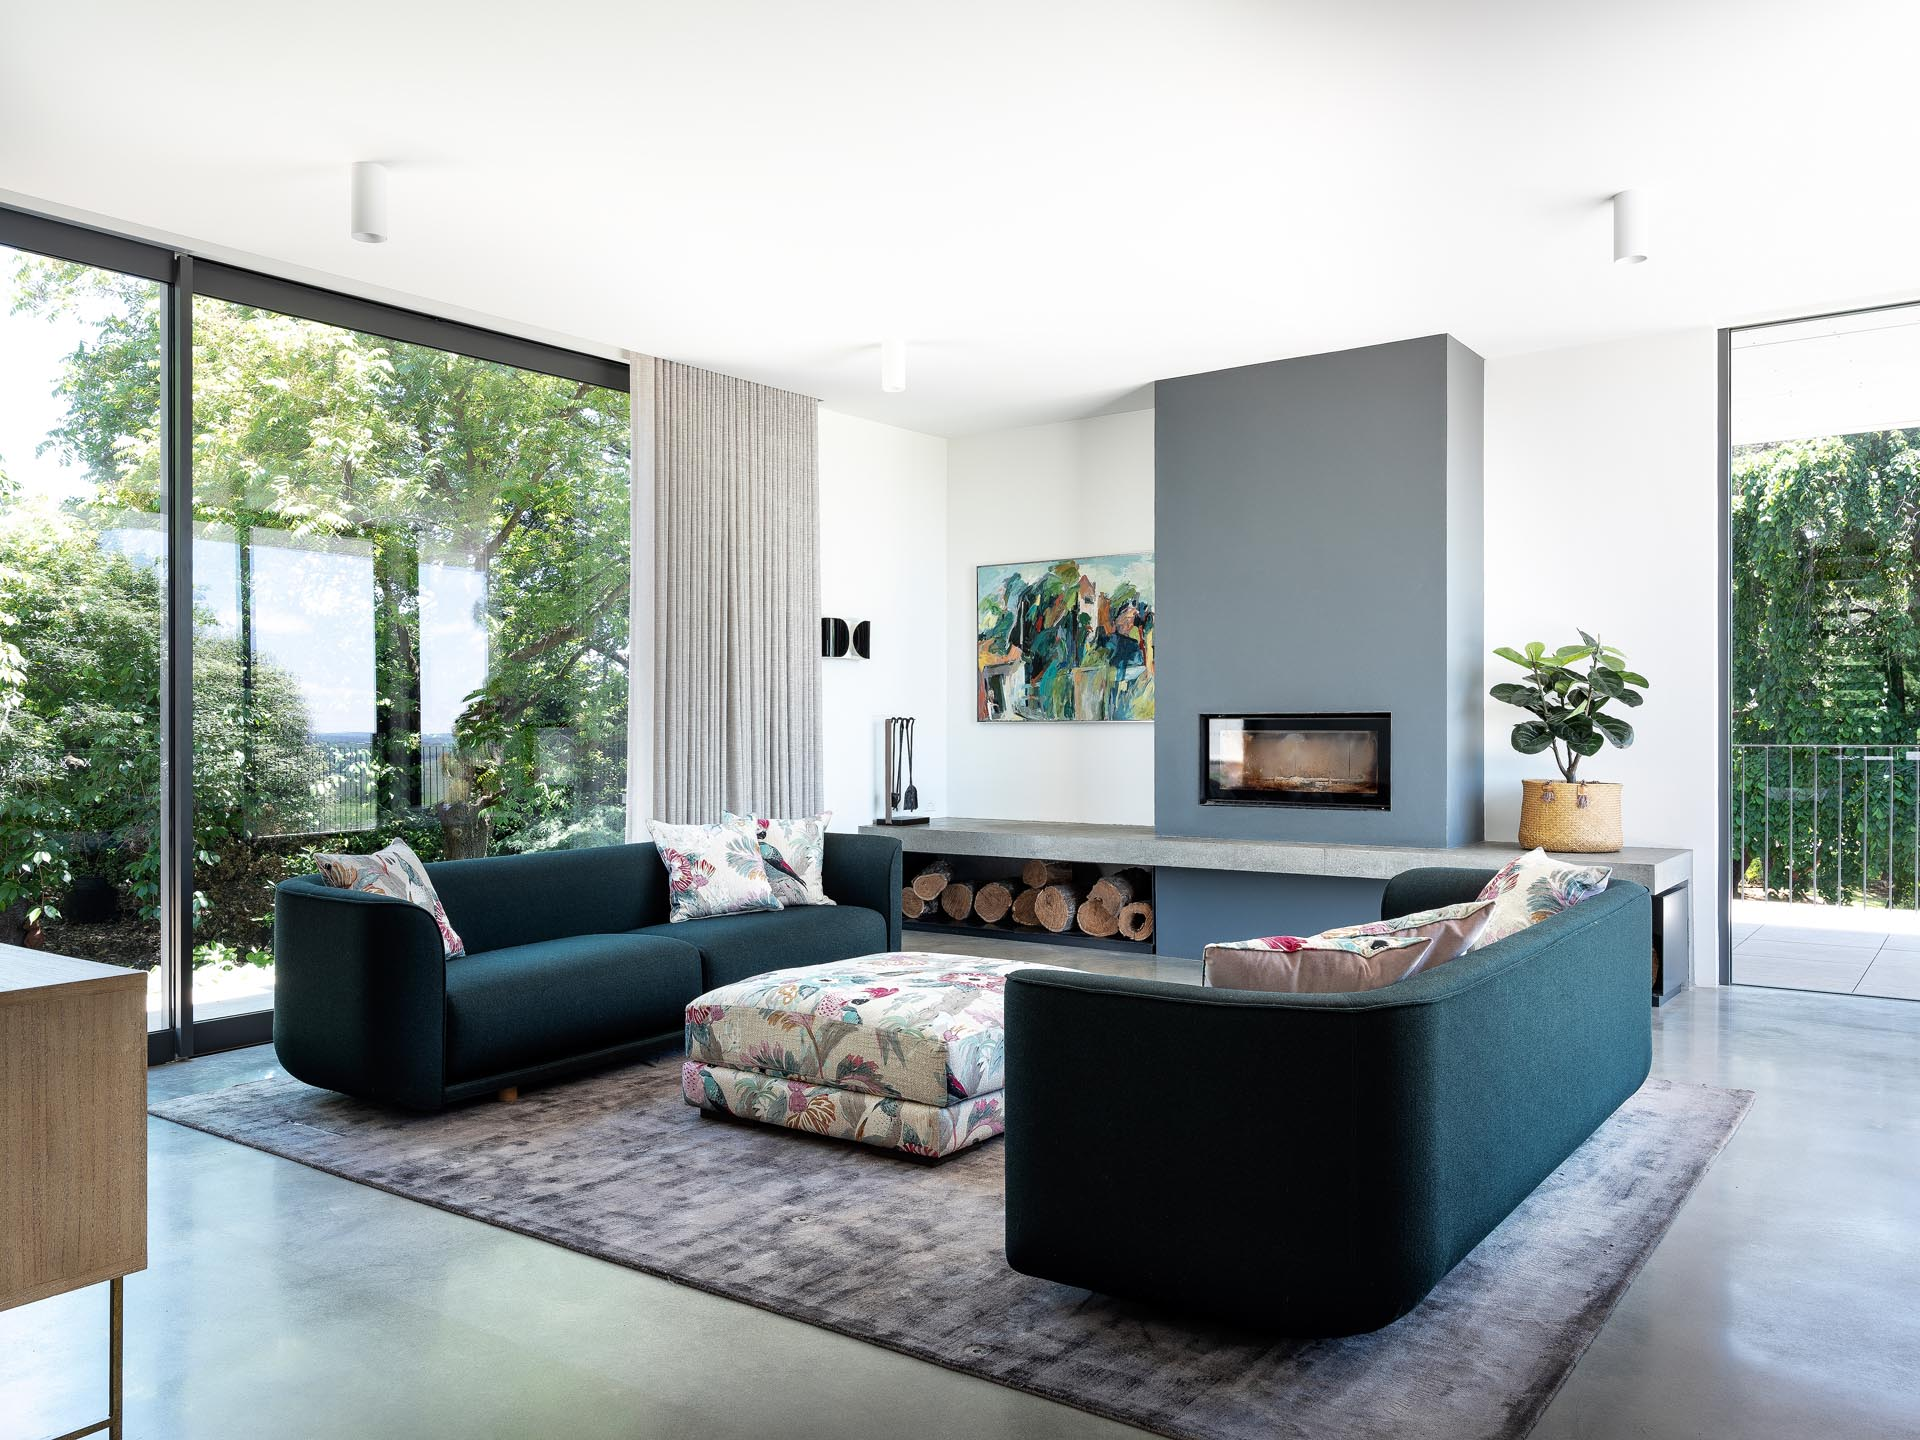 This modern living room palette includes rich greens, textured marble, timber, and touches of florals and pinks in the upholstery, soft furnishings, and art.